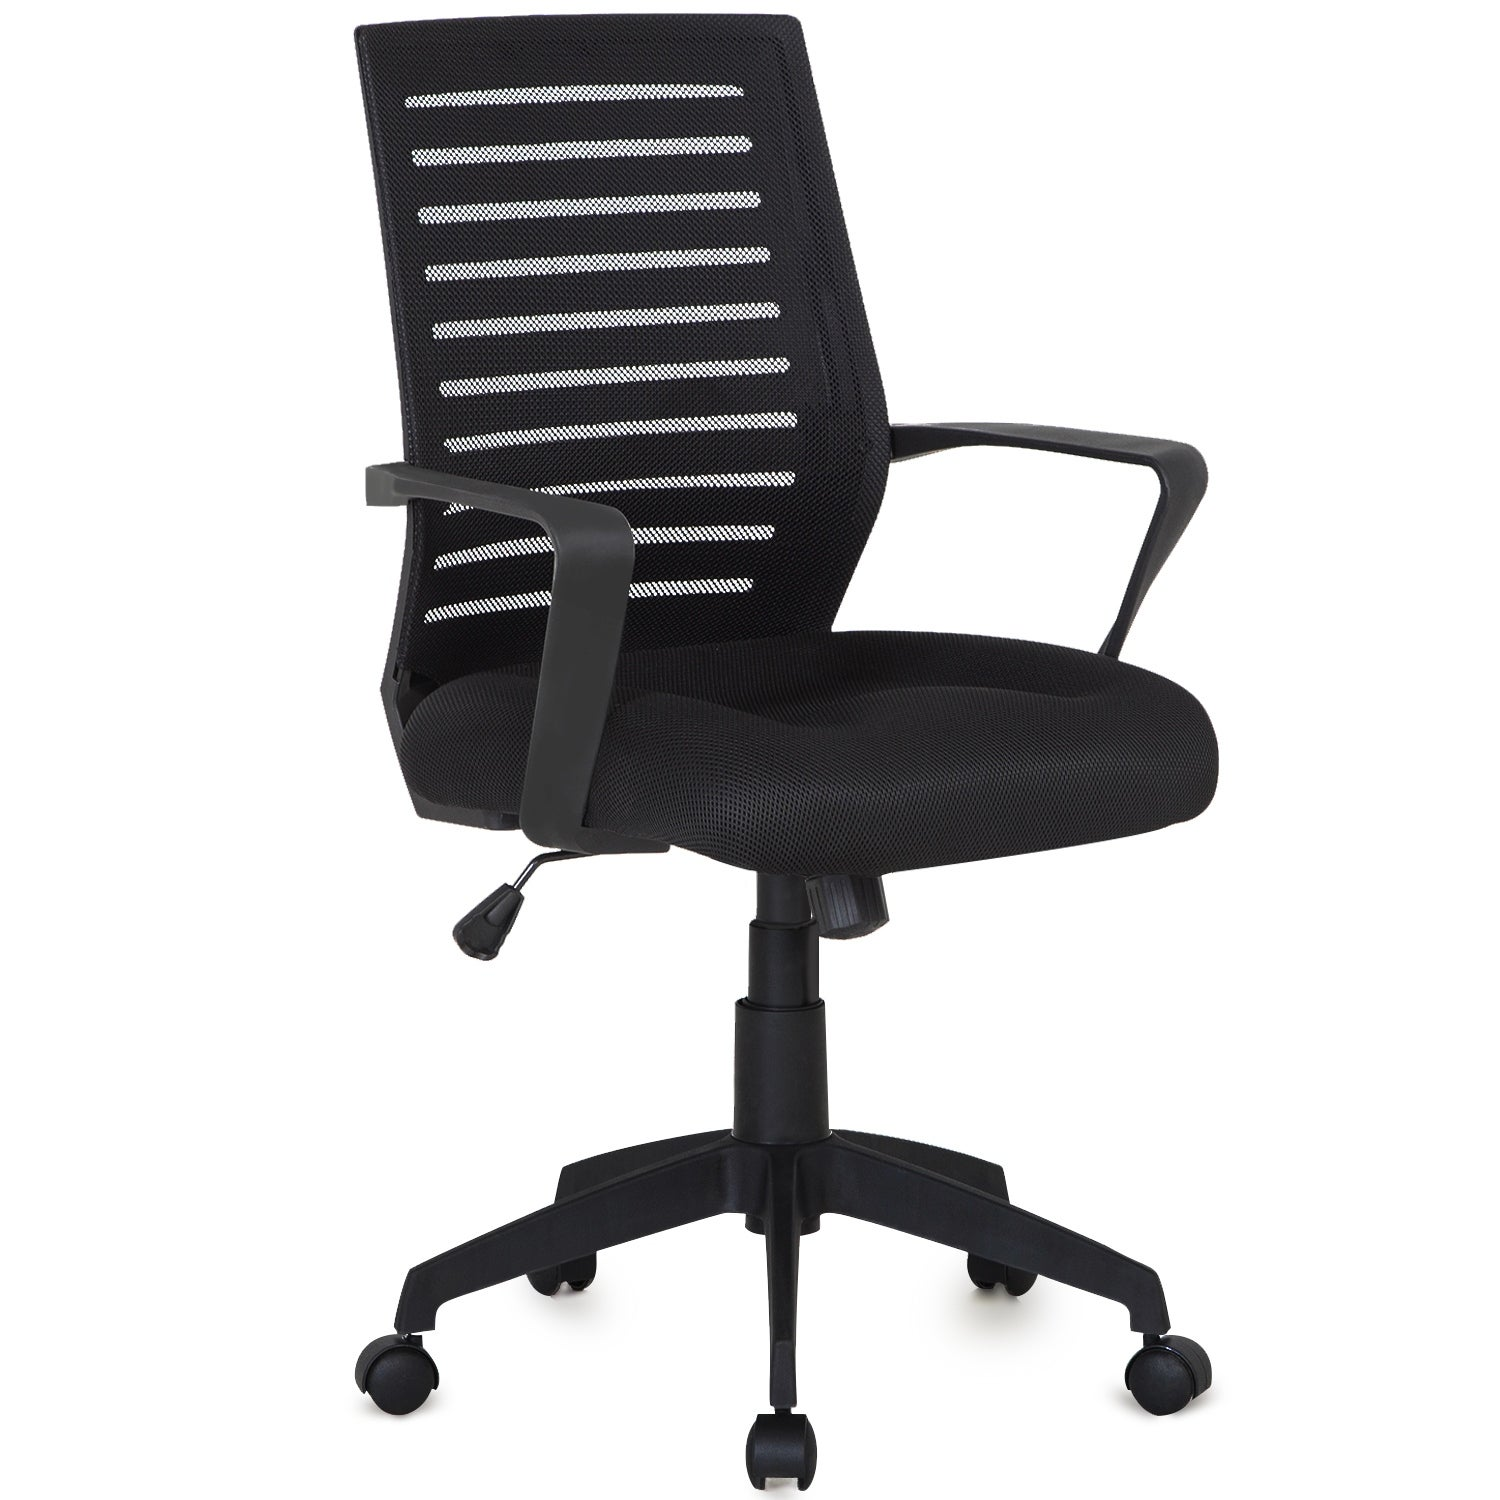 Adjustable Computer Chair Black Comfortable Mesh Chair ...